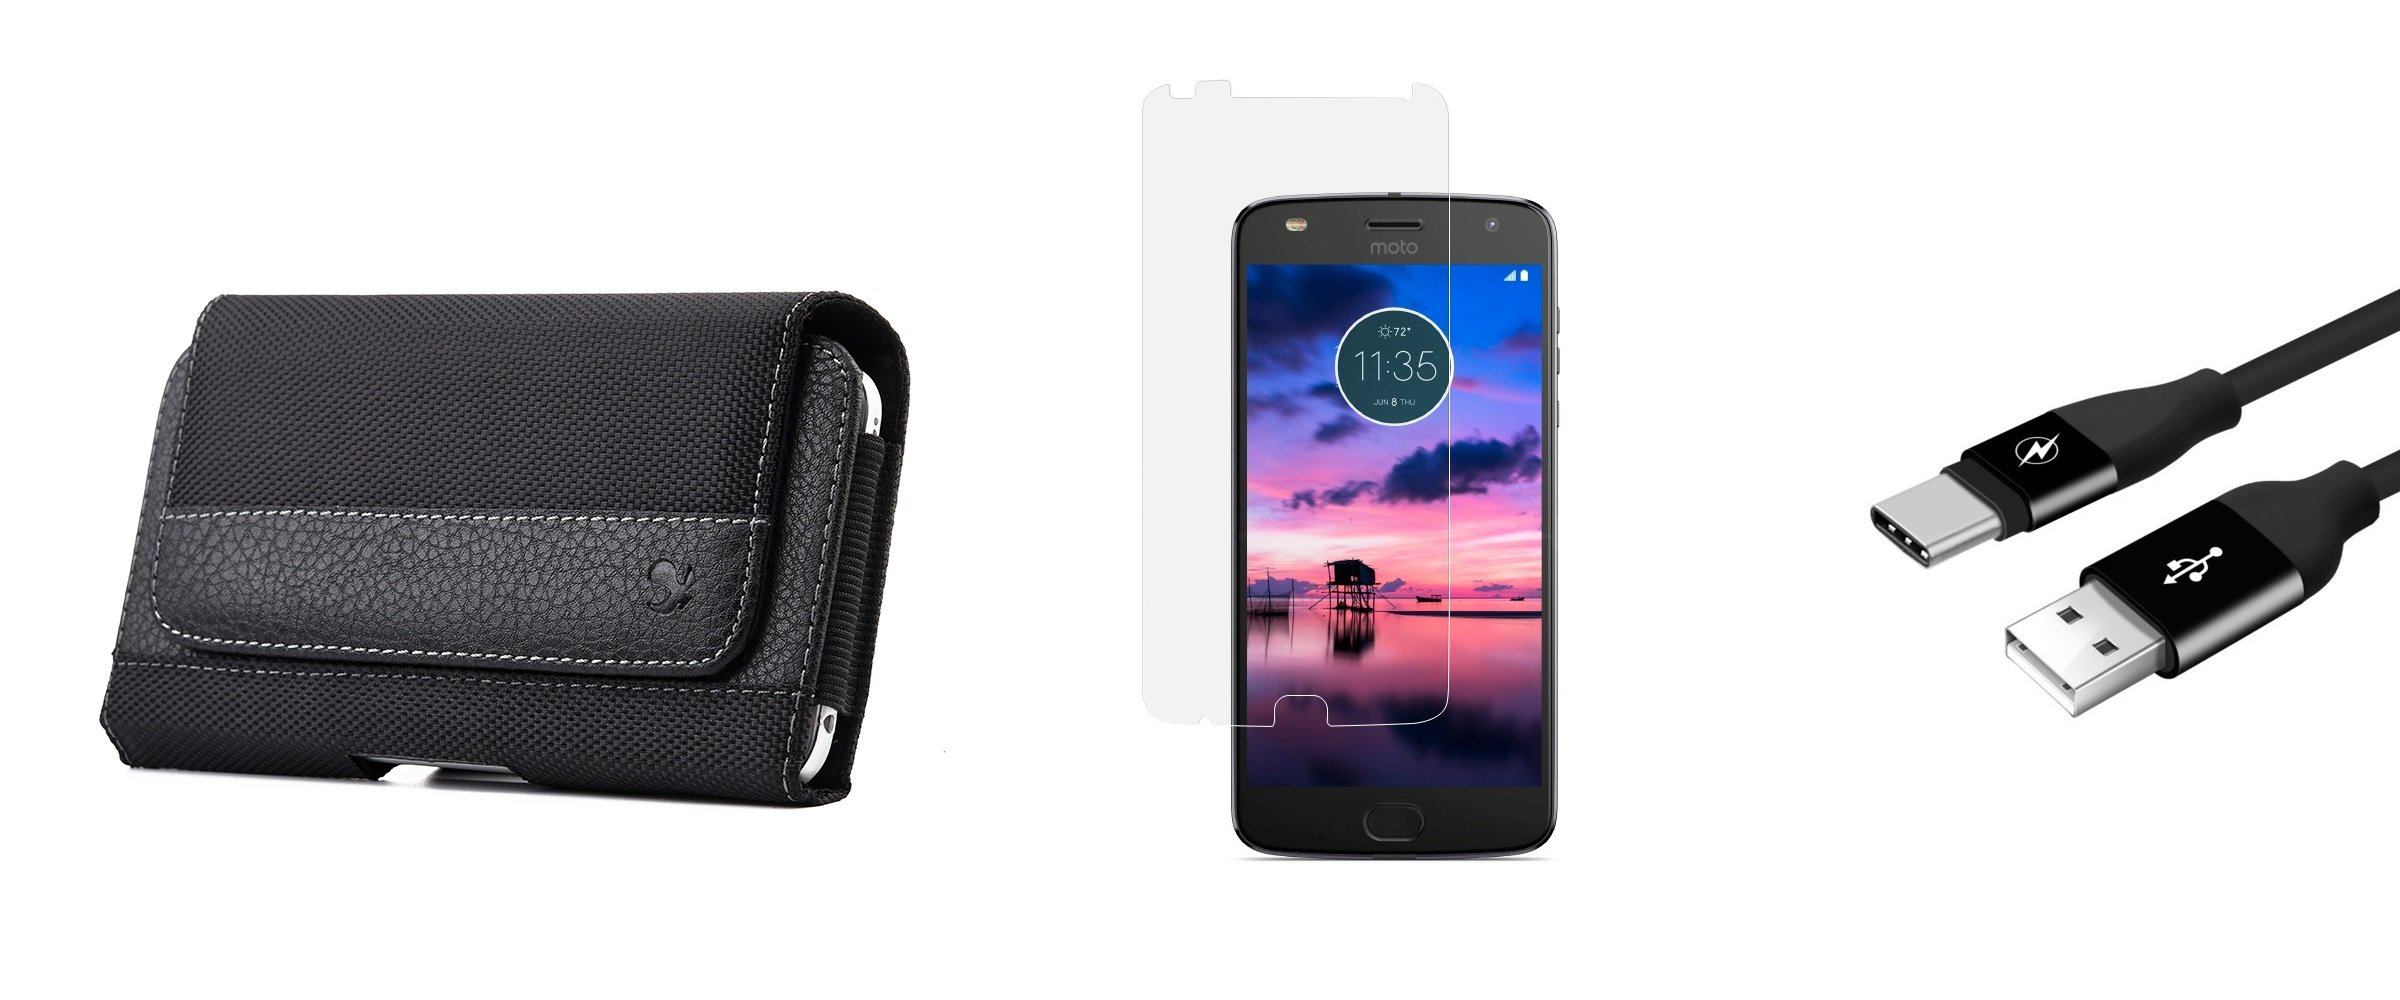 Moto Z2 Play - Case Bundle: Synthetic PU Leather Stitched Fabric [Belt Clip | Loops] Holster Pouch (Fits Slim Cases), Glass Screen Protector, Durable Fast Charging USB Type-C Cable [3 Feet], Atom LED